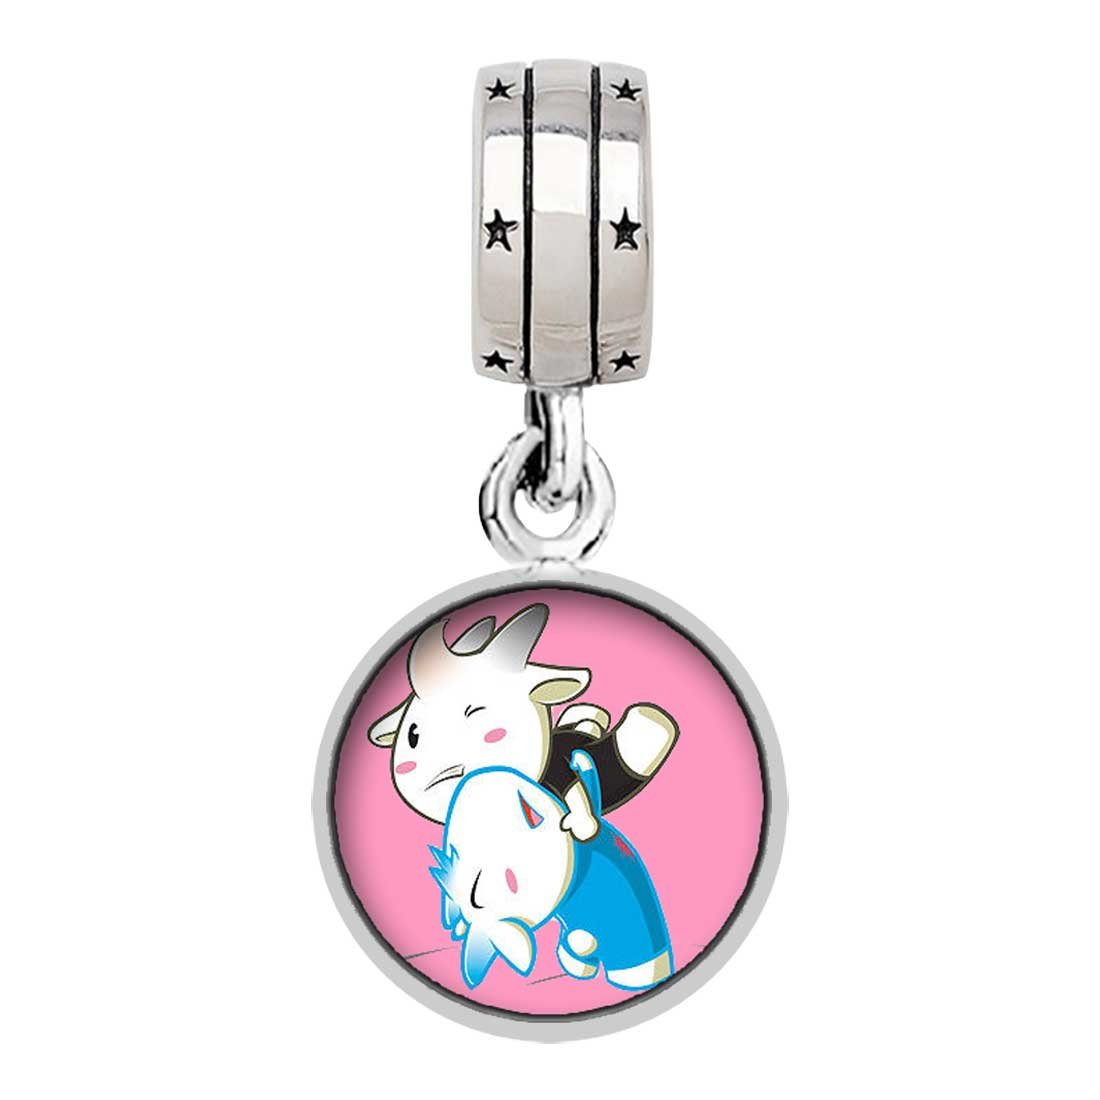 Olympics Wrestling cartoon Photo ''With God All Things Are Possible'' Religious Dangle Charm Bracelets